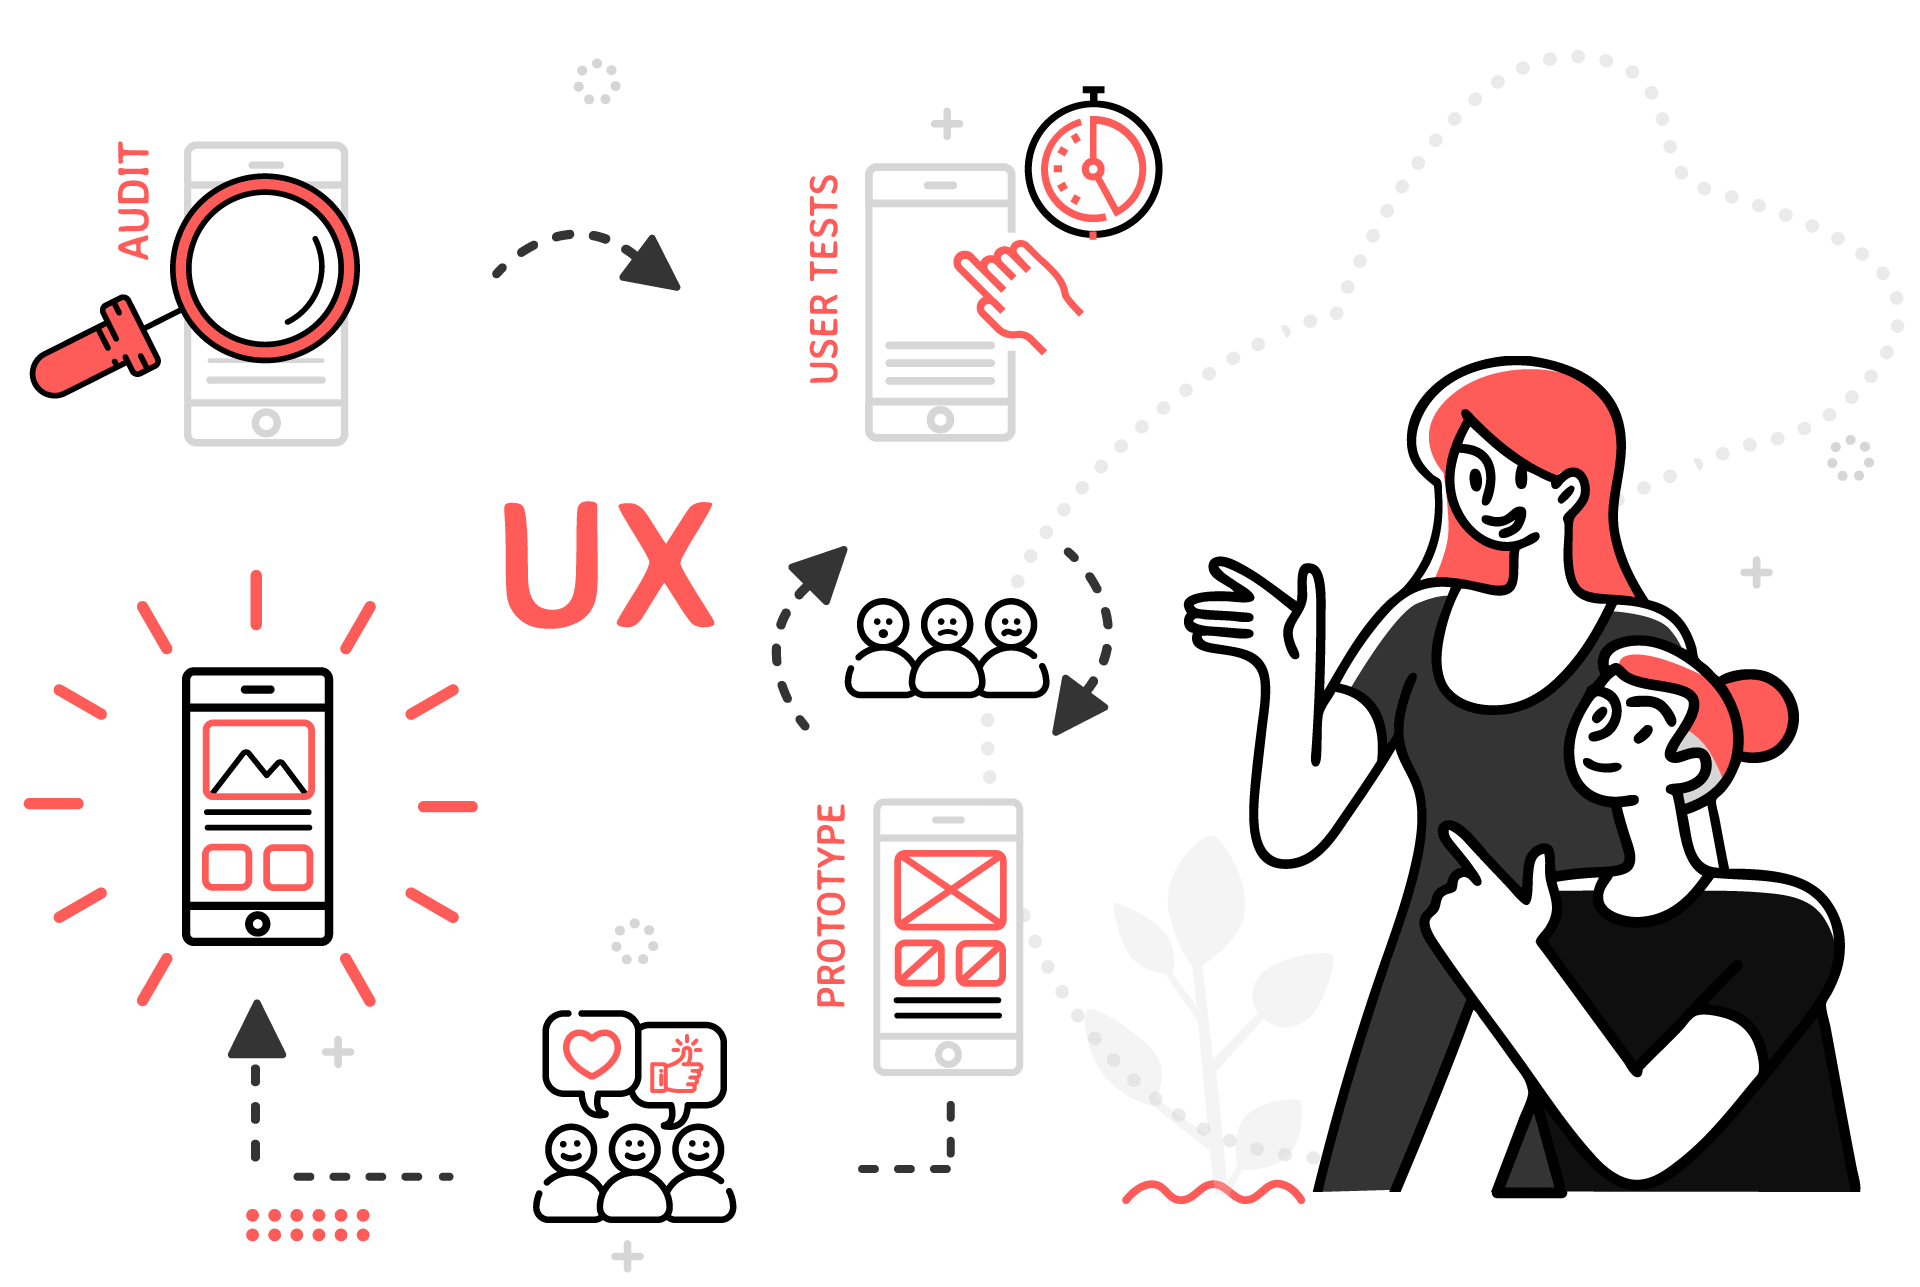 UX Design & research - Oui Are Web Agence de UX Design Bruxelles